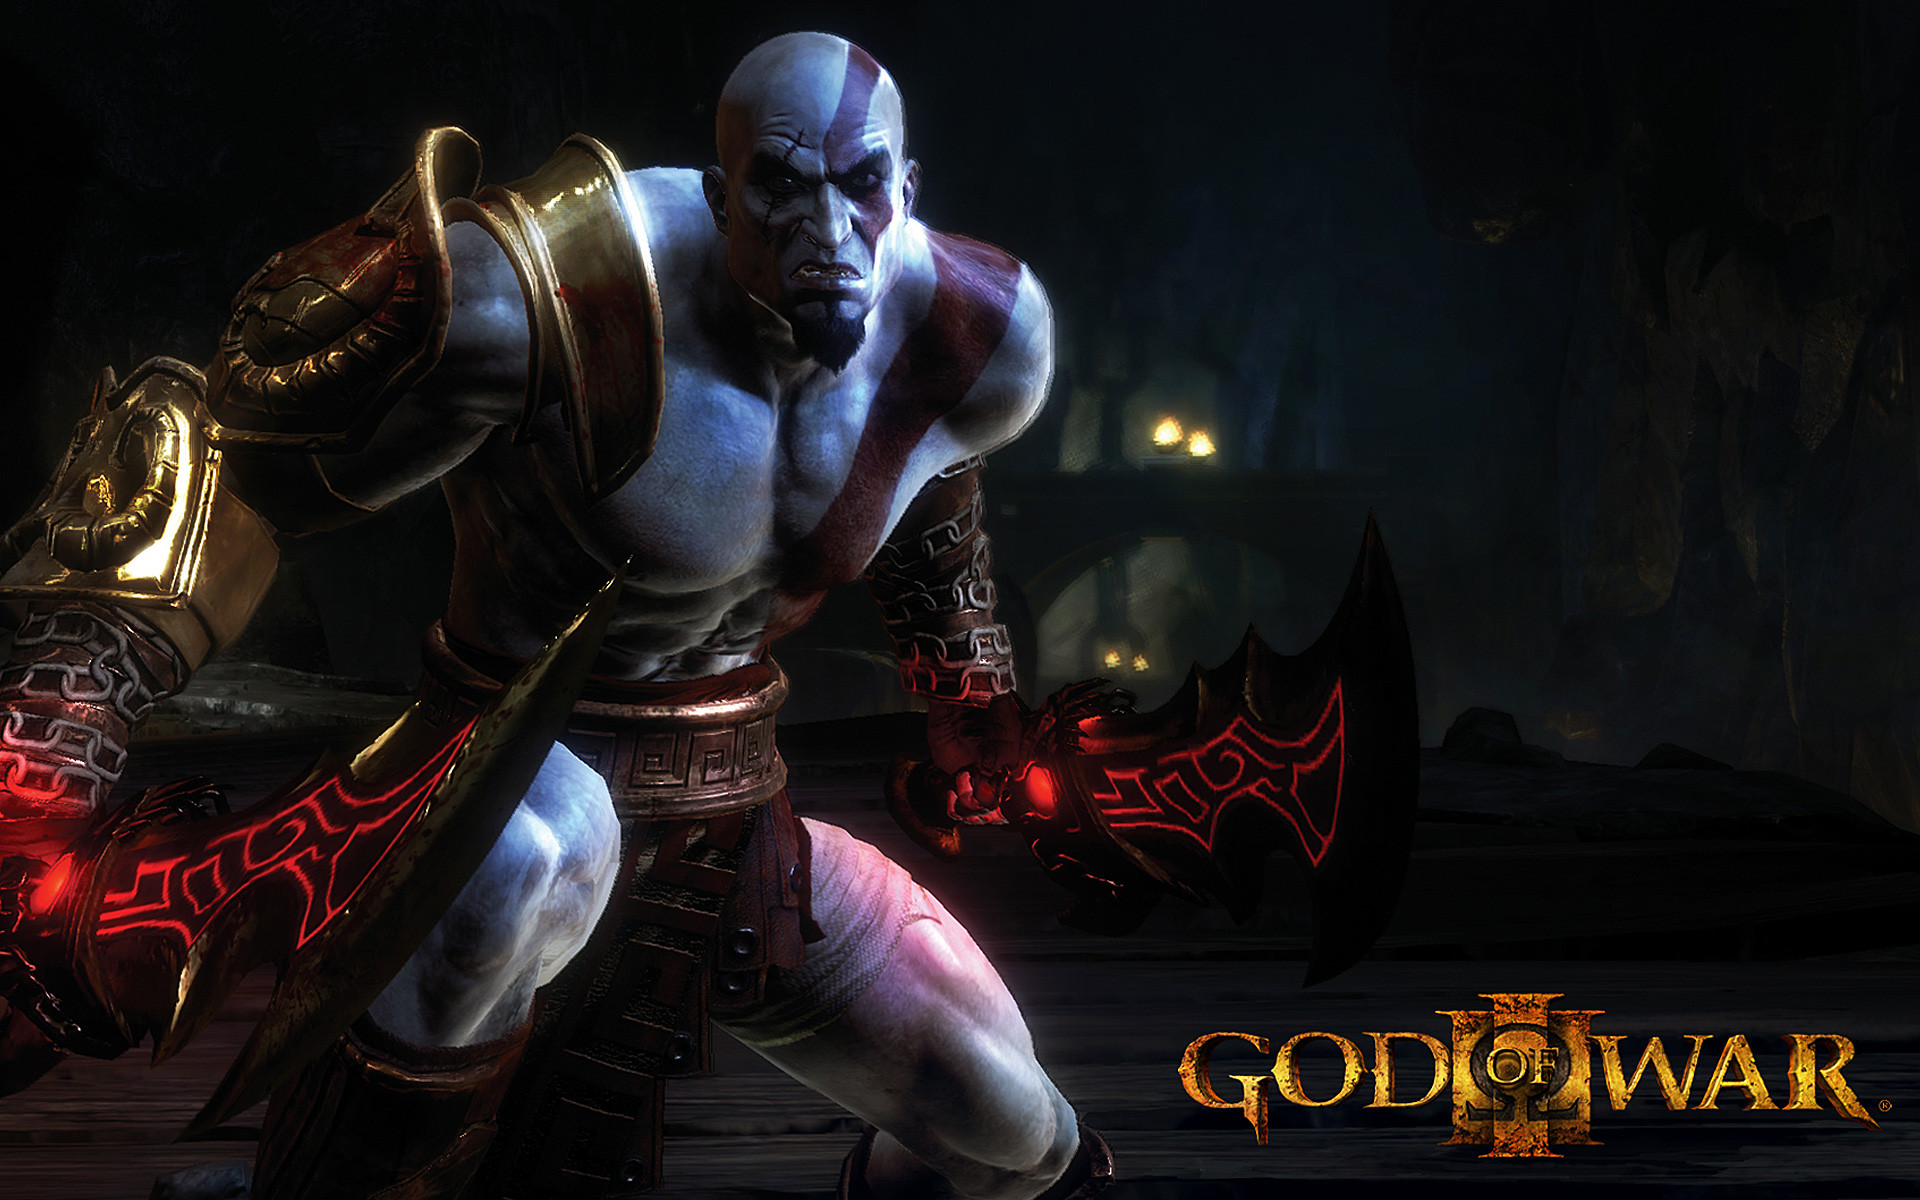 1920x1200 Kratos with a sword God of War wallpaper Game wallpapers